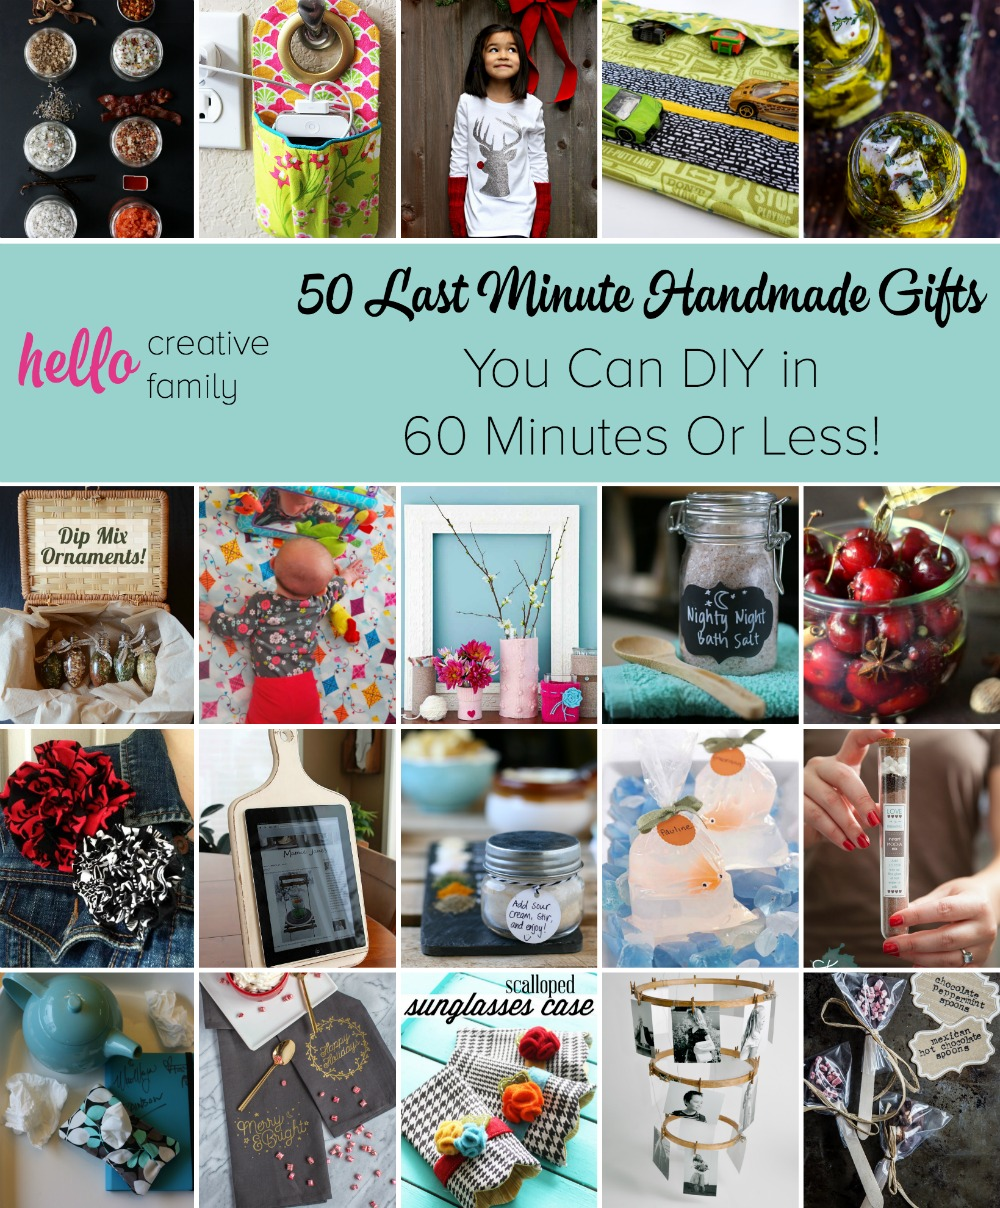 Stuck for a last minute gift? Here are 50 Last Minute Handmade Gifts you can DIY in 60 Minutes or less!